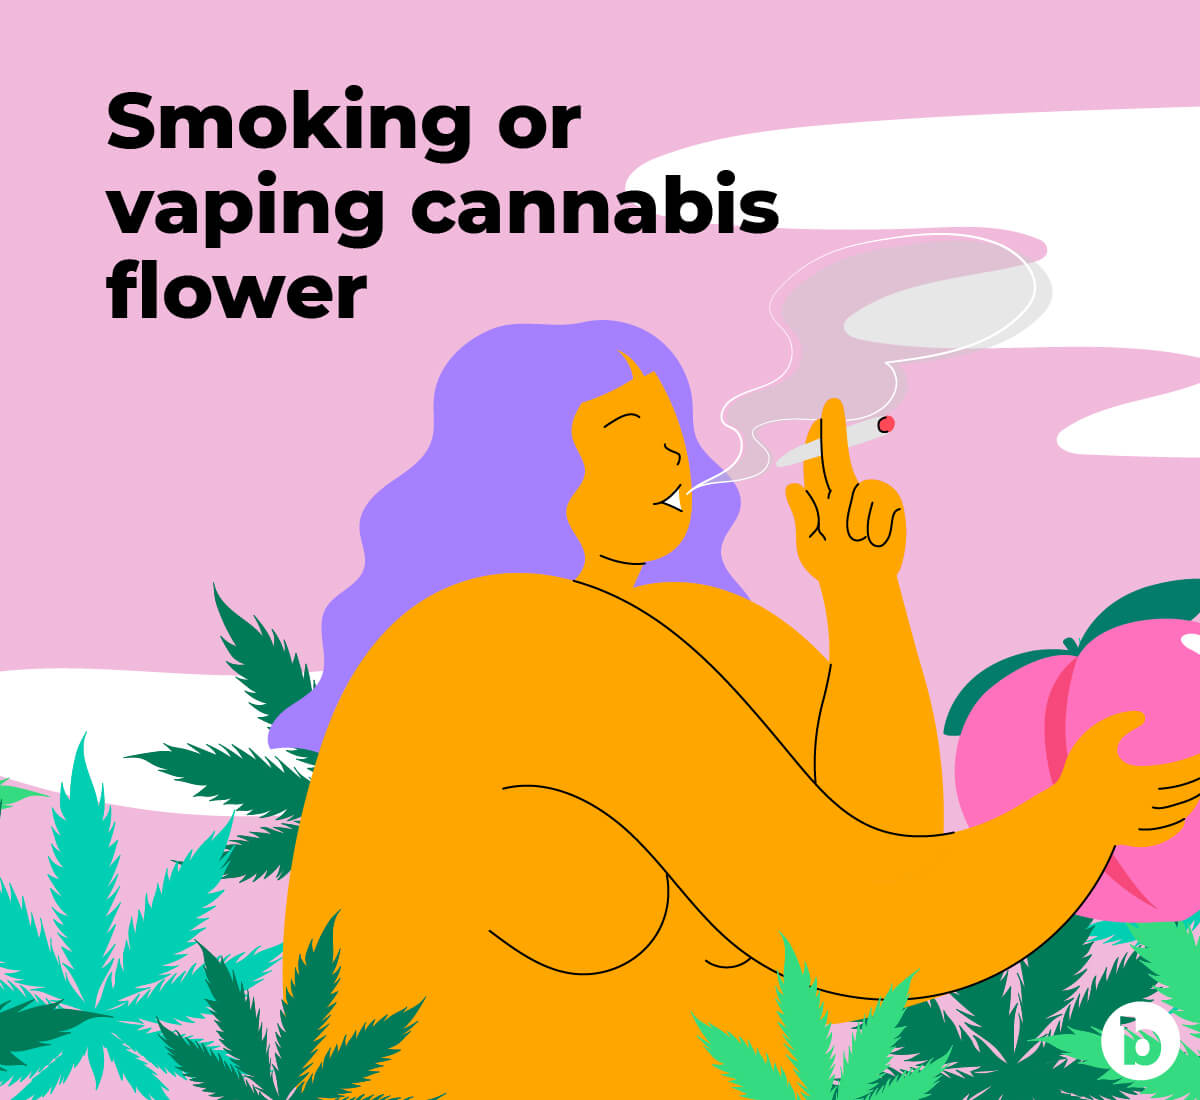 Smoking or vaping cannabis flower can help you relax prior to anal play